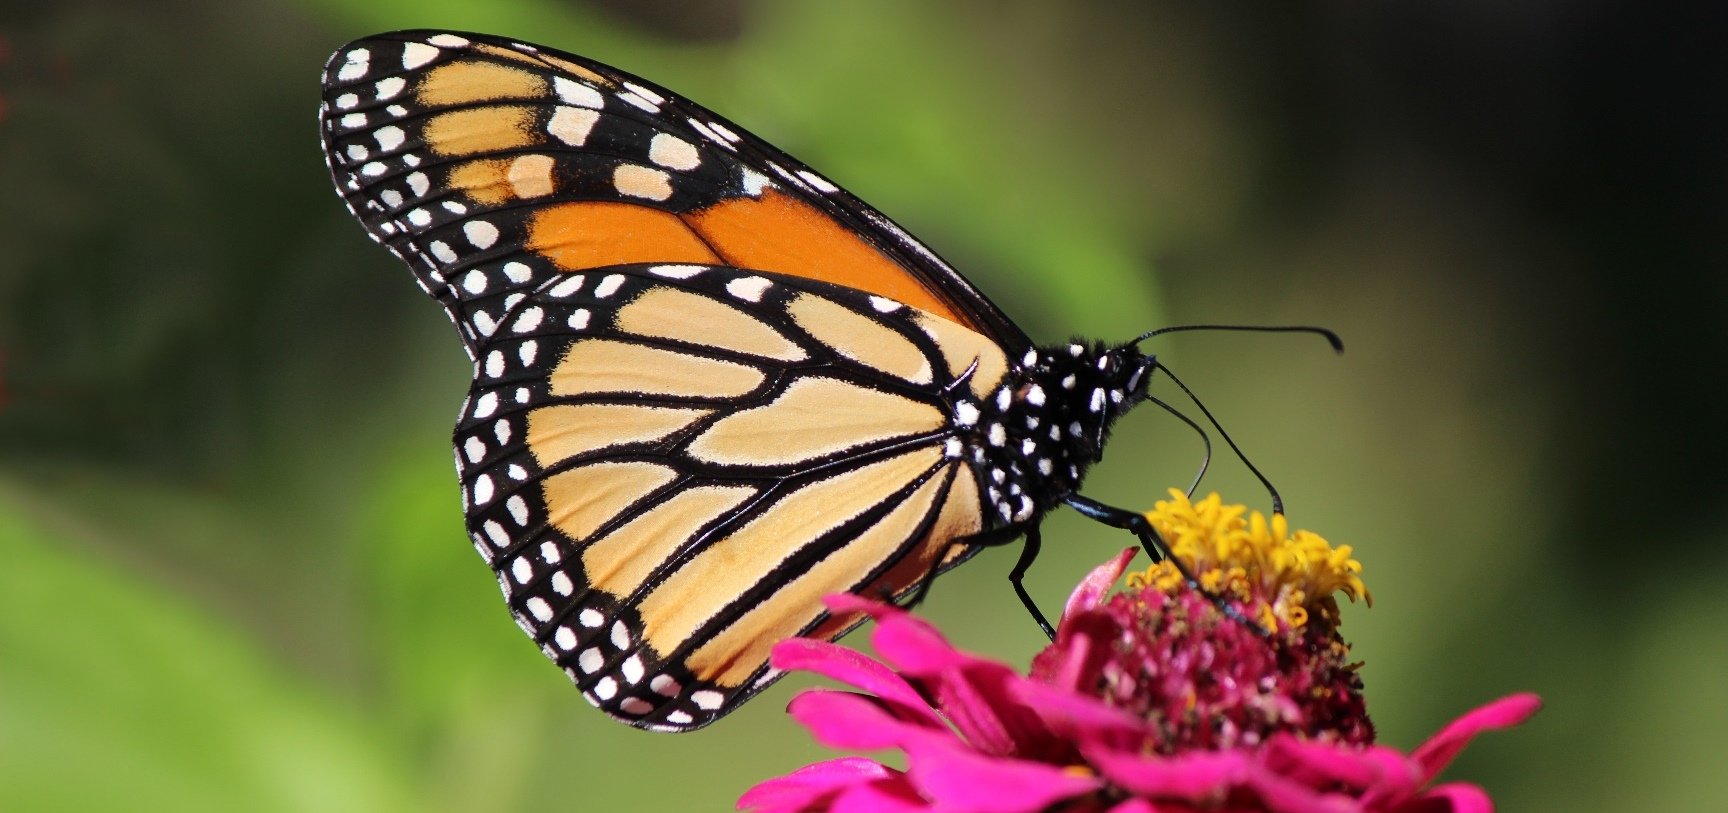 Update - The Monarch Butterfly: An Icon Endangered - HillNotes